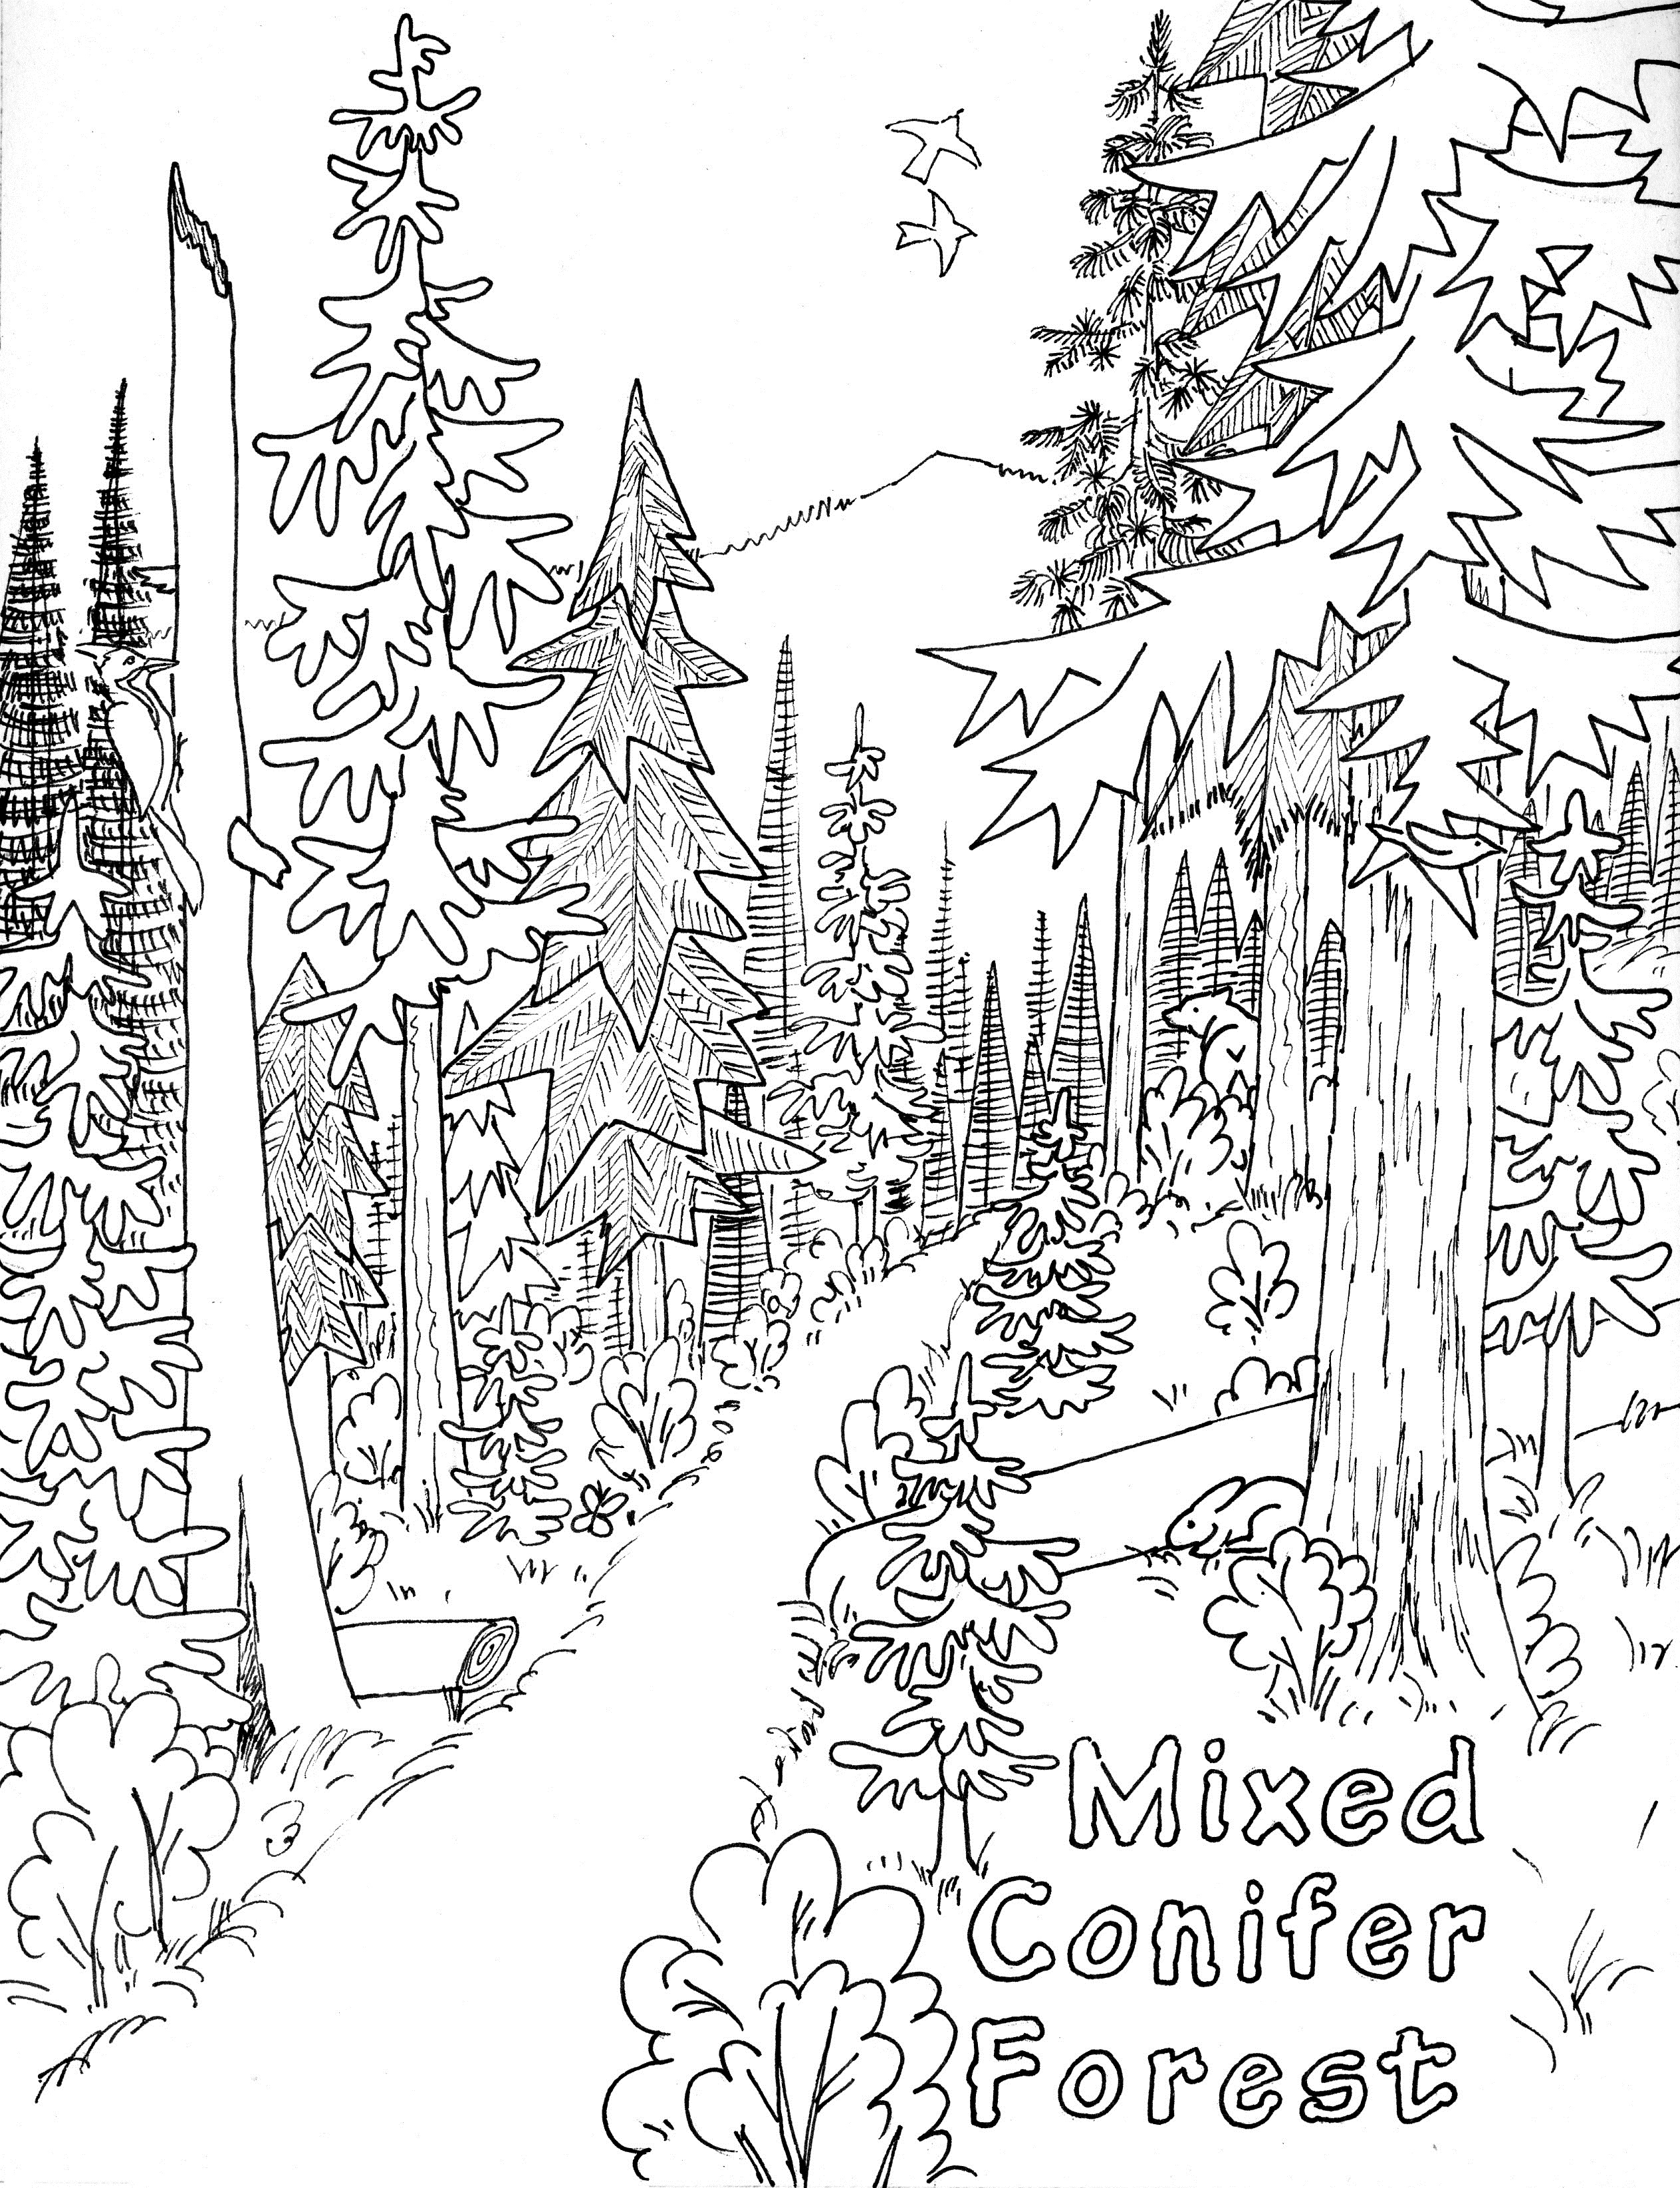 coloring worksheets about nature free coloring pages nature scenes at getdrawings free nature about worksheets coloring